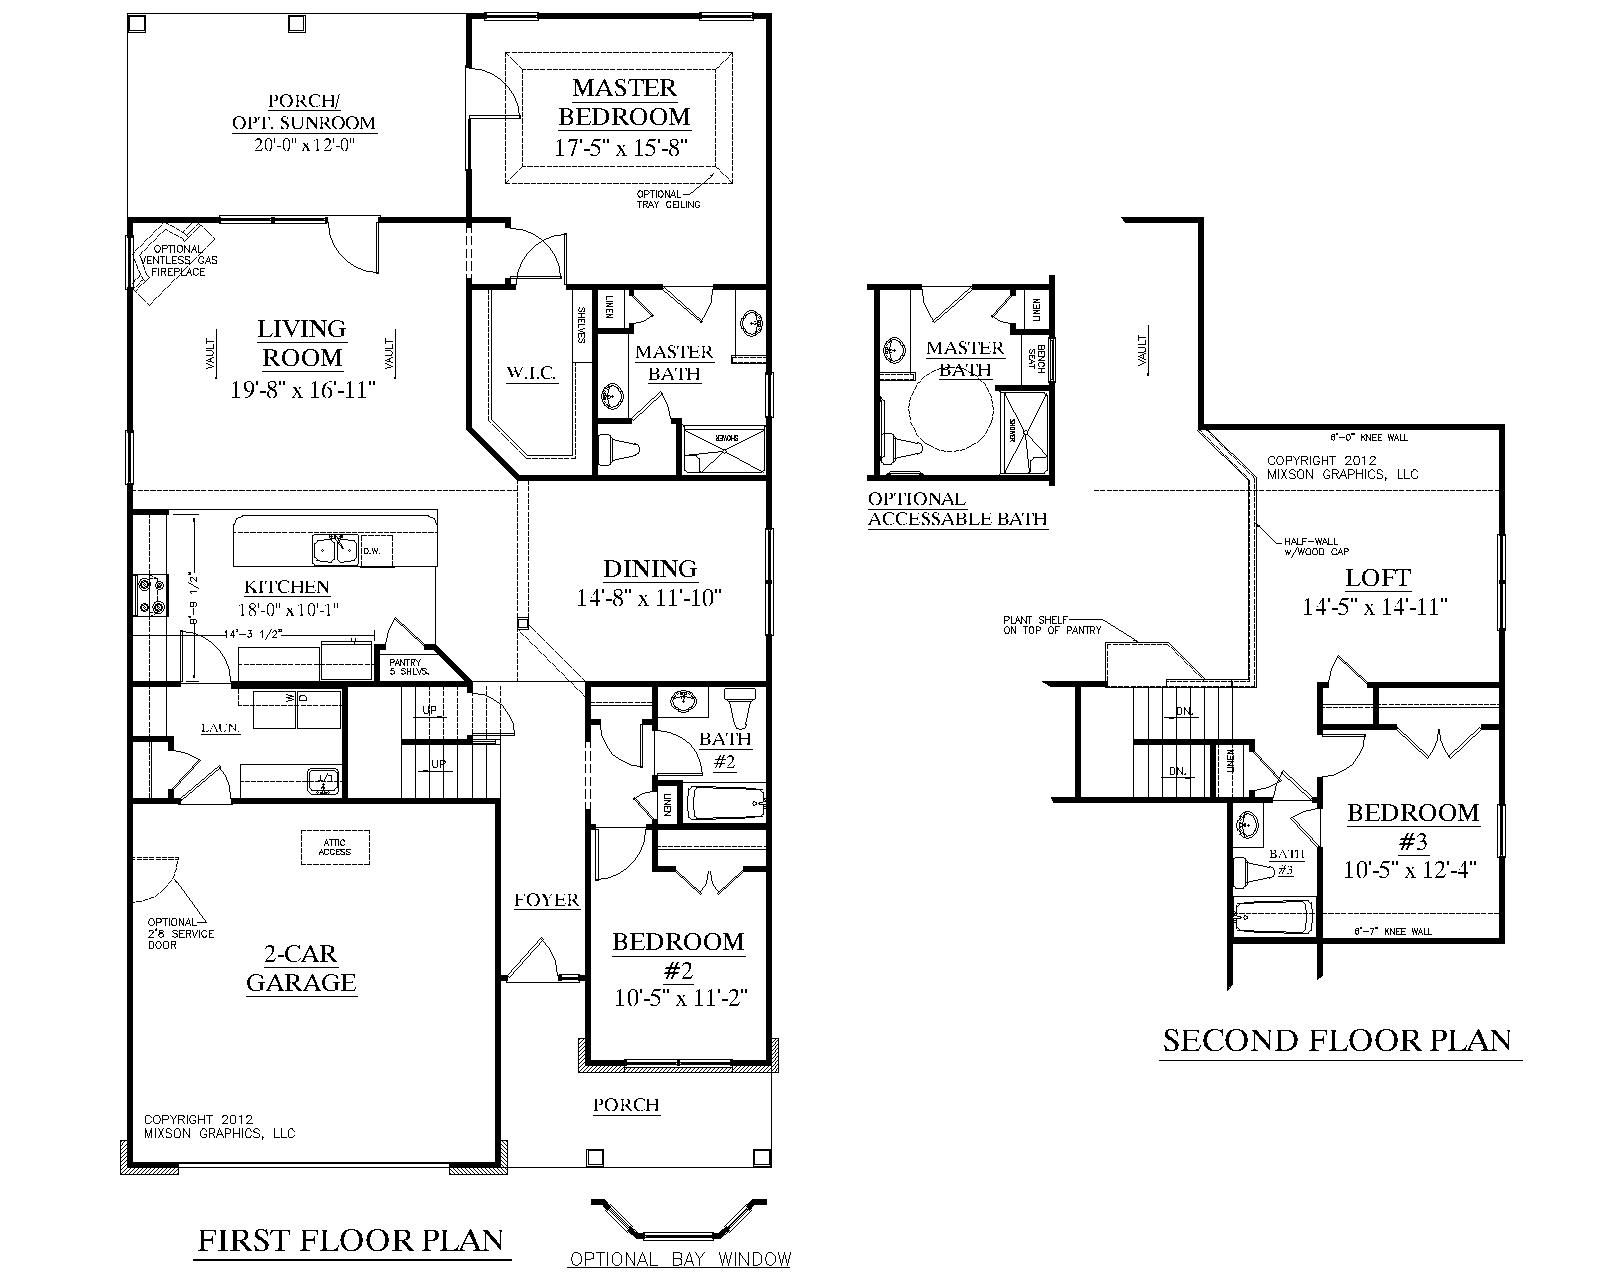 House plan 2224 kingstree floor plan traditional 1 1 2 for Two storey house plans